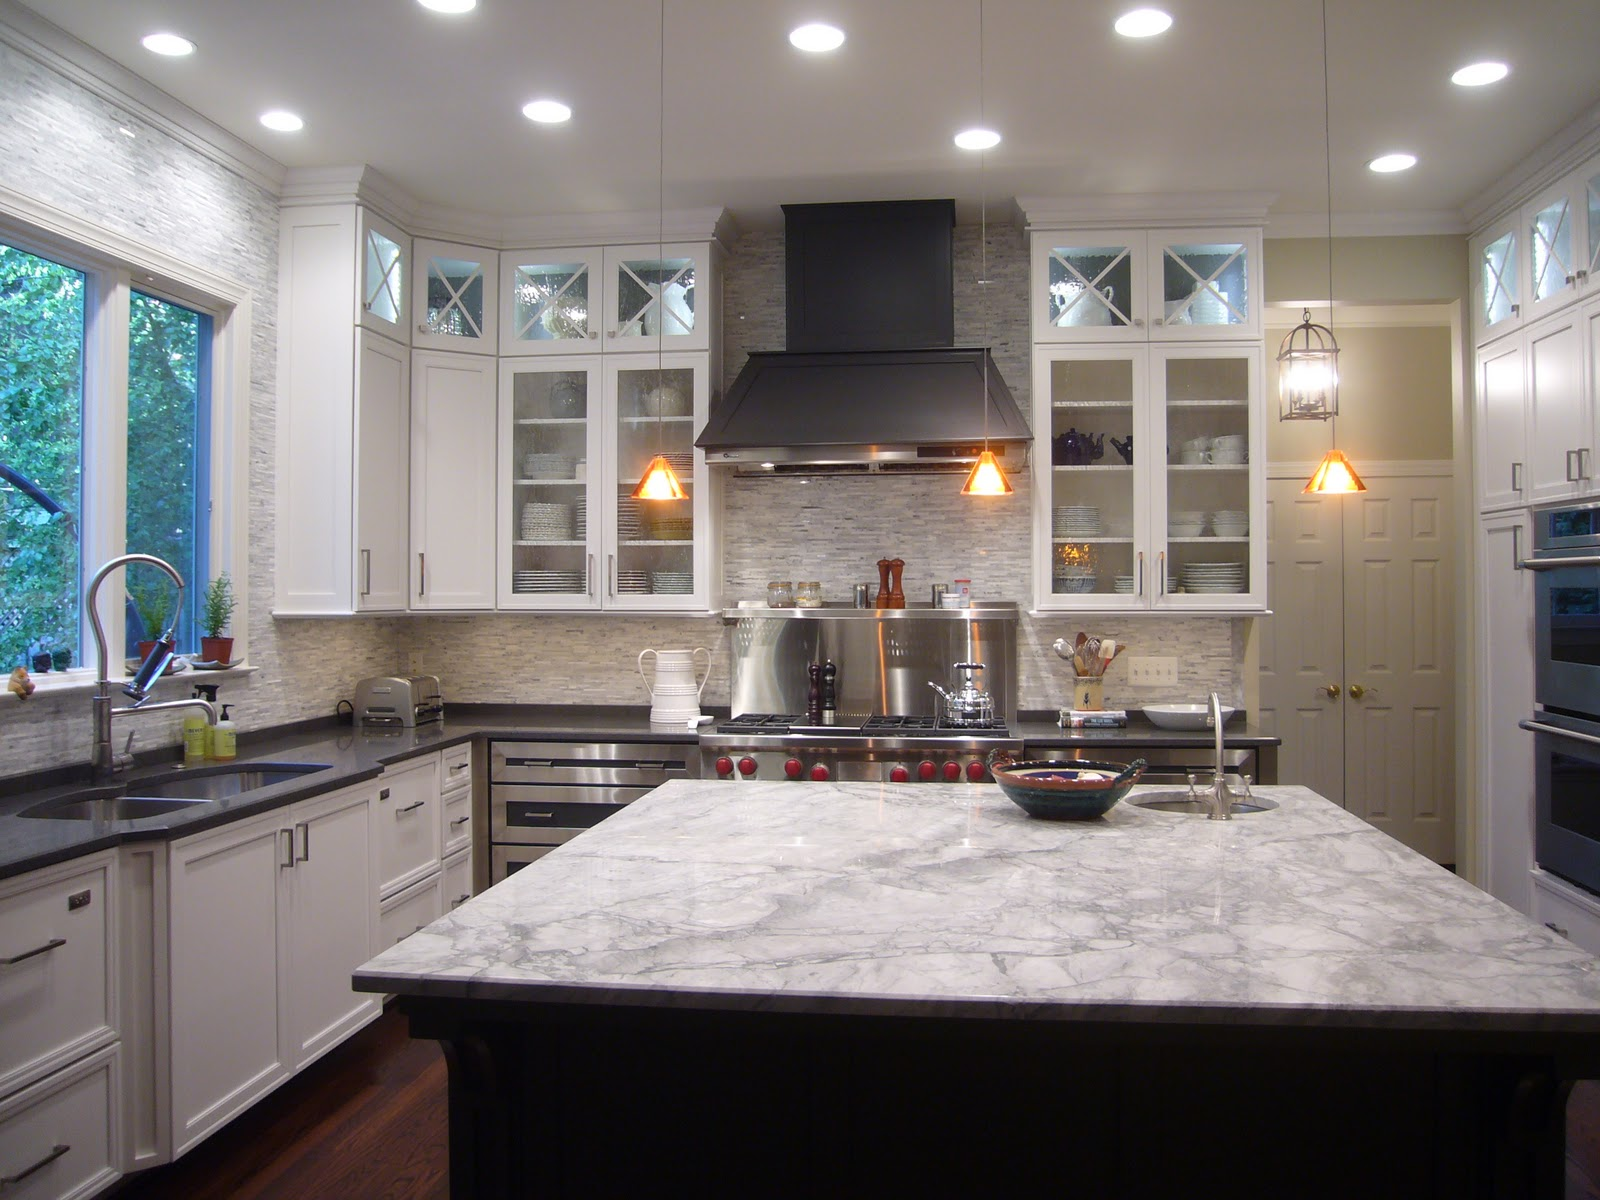 Rabbit runn designs a kitchen makeover - Pictures of kitchens with quartz countertops ...